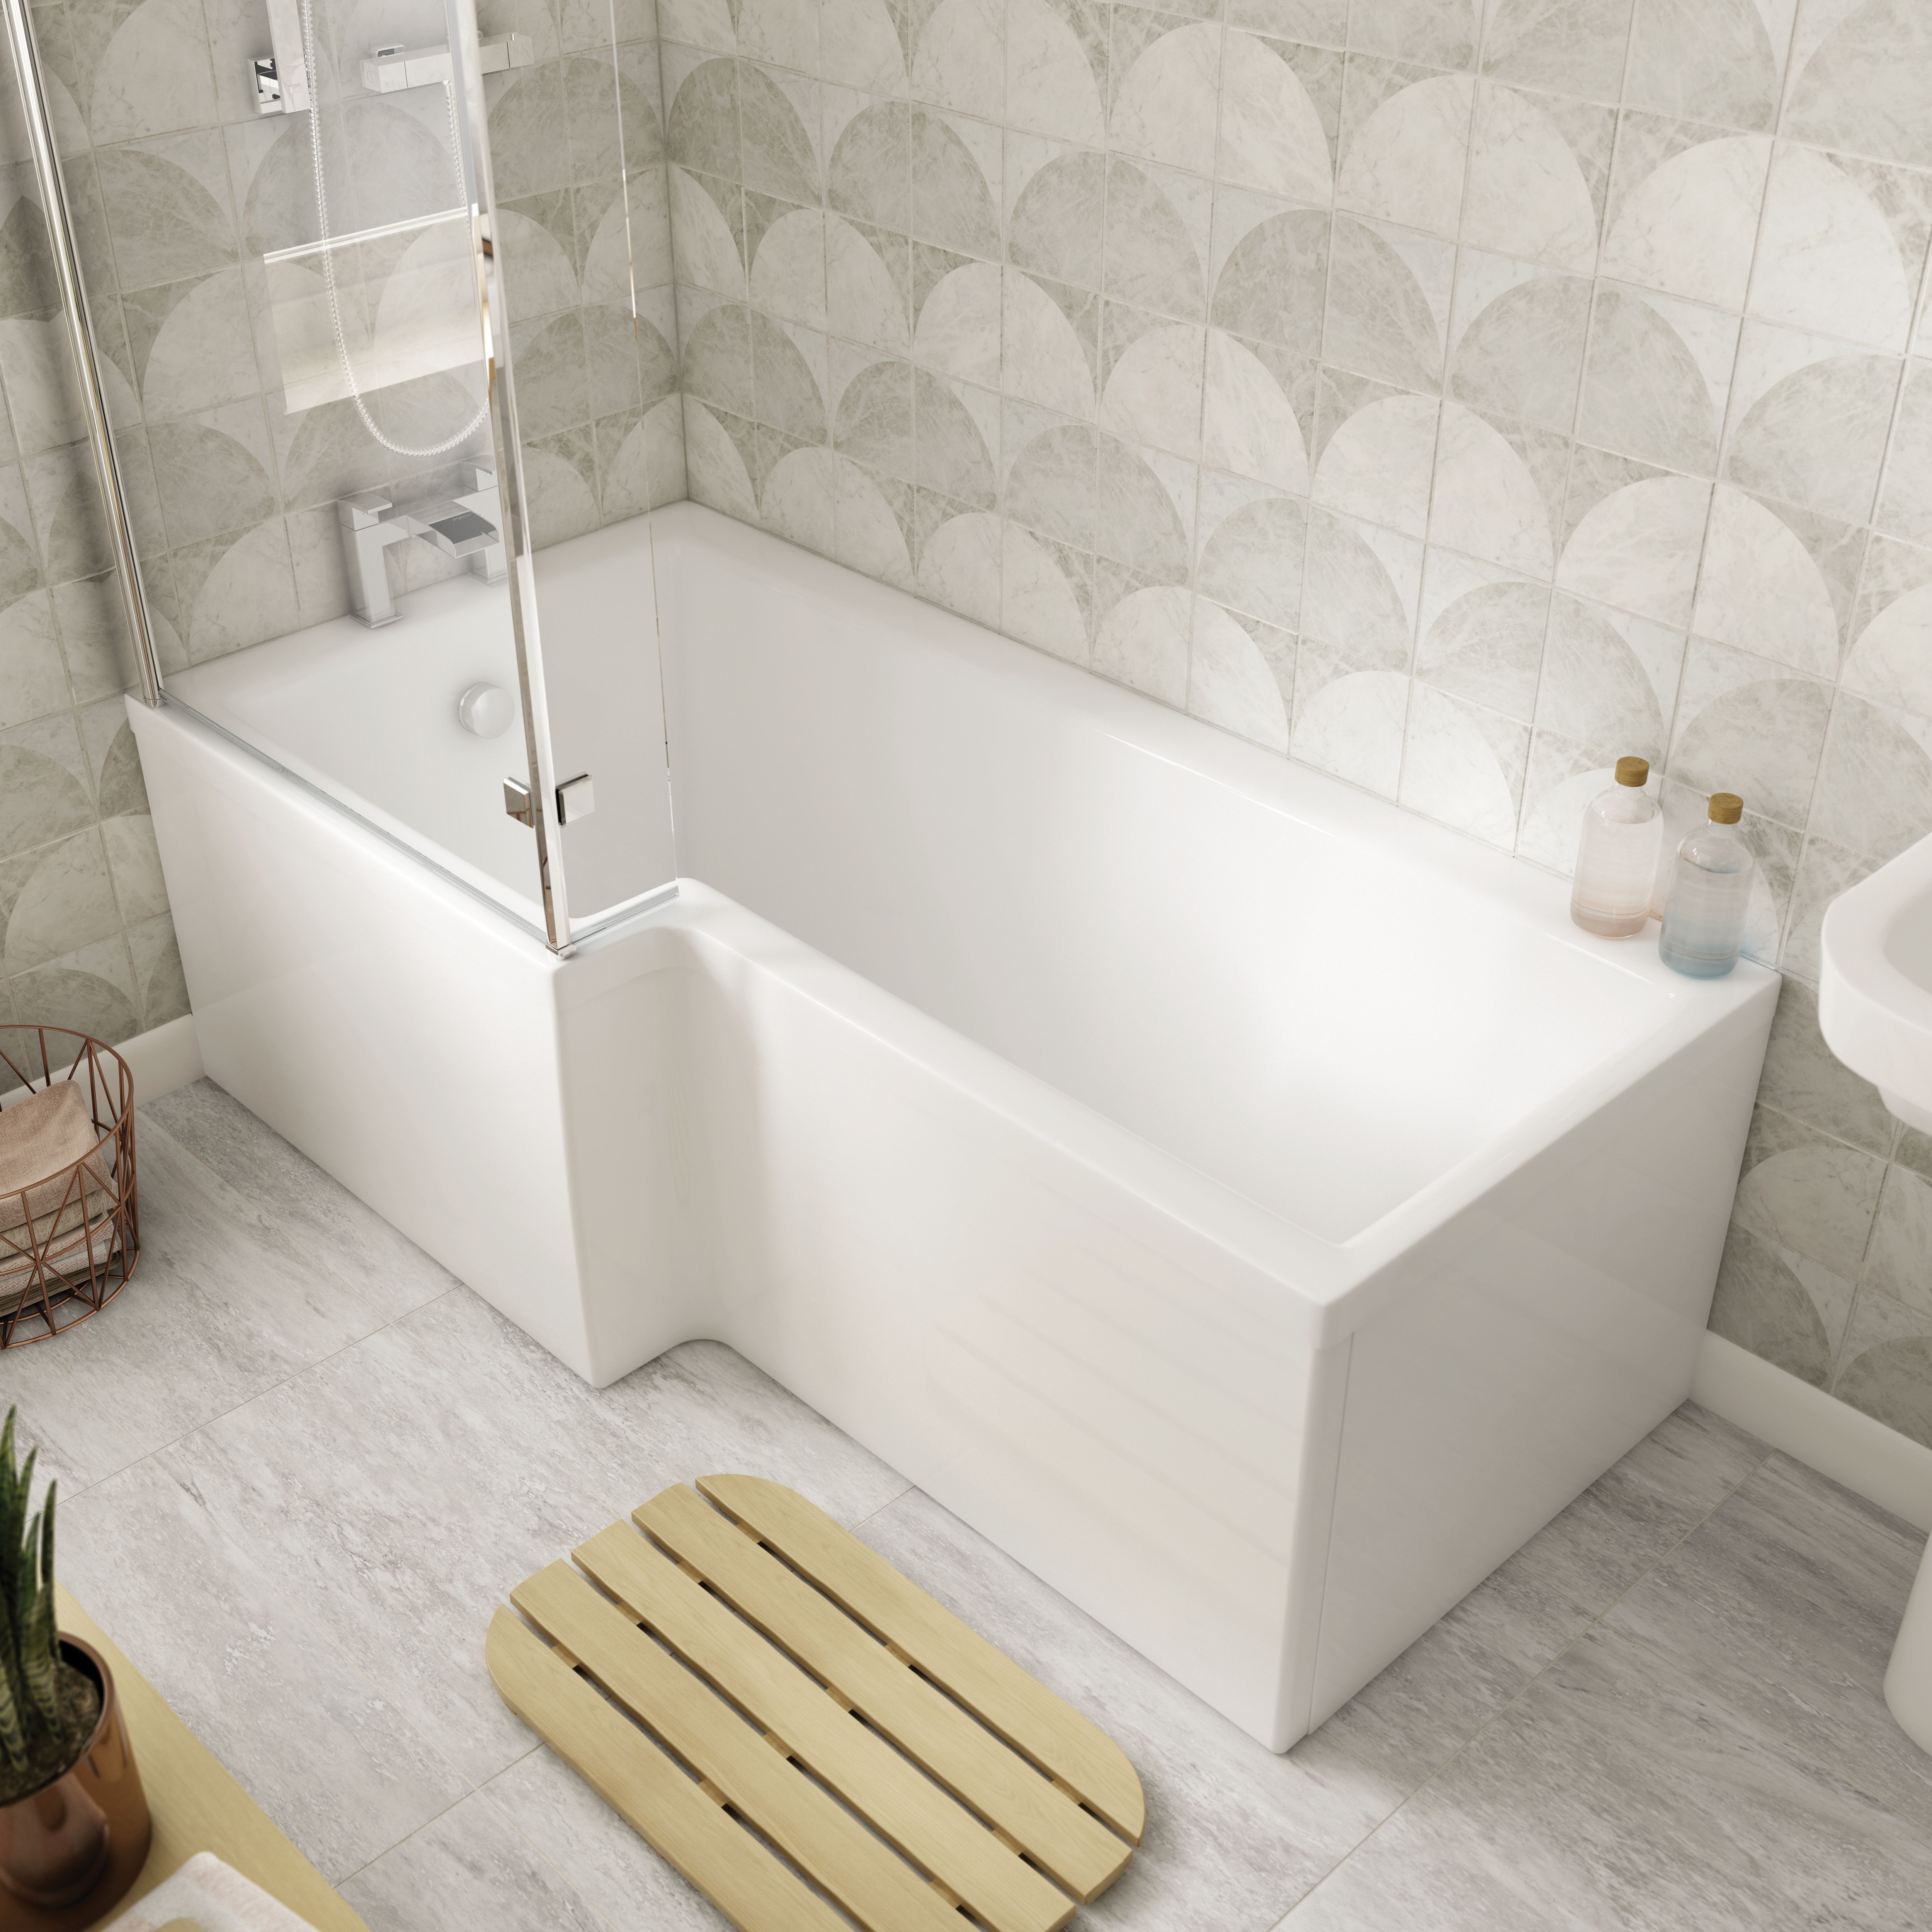 Wickes L Shaped Front Bath Panel 1500 Mm | Wickes.co.uk